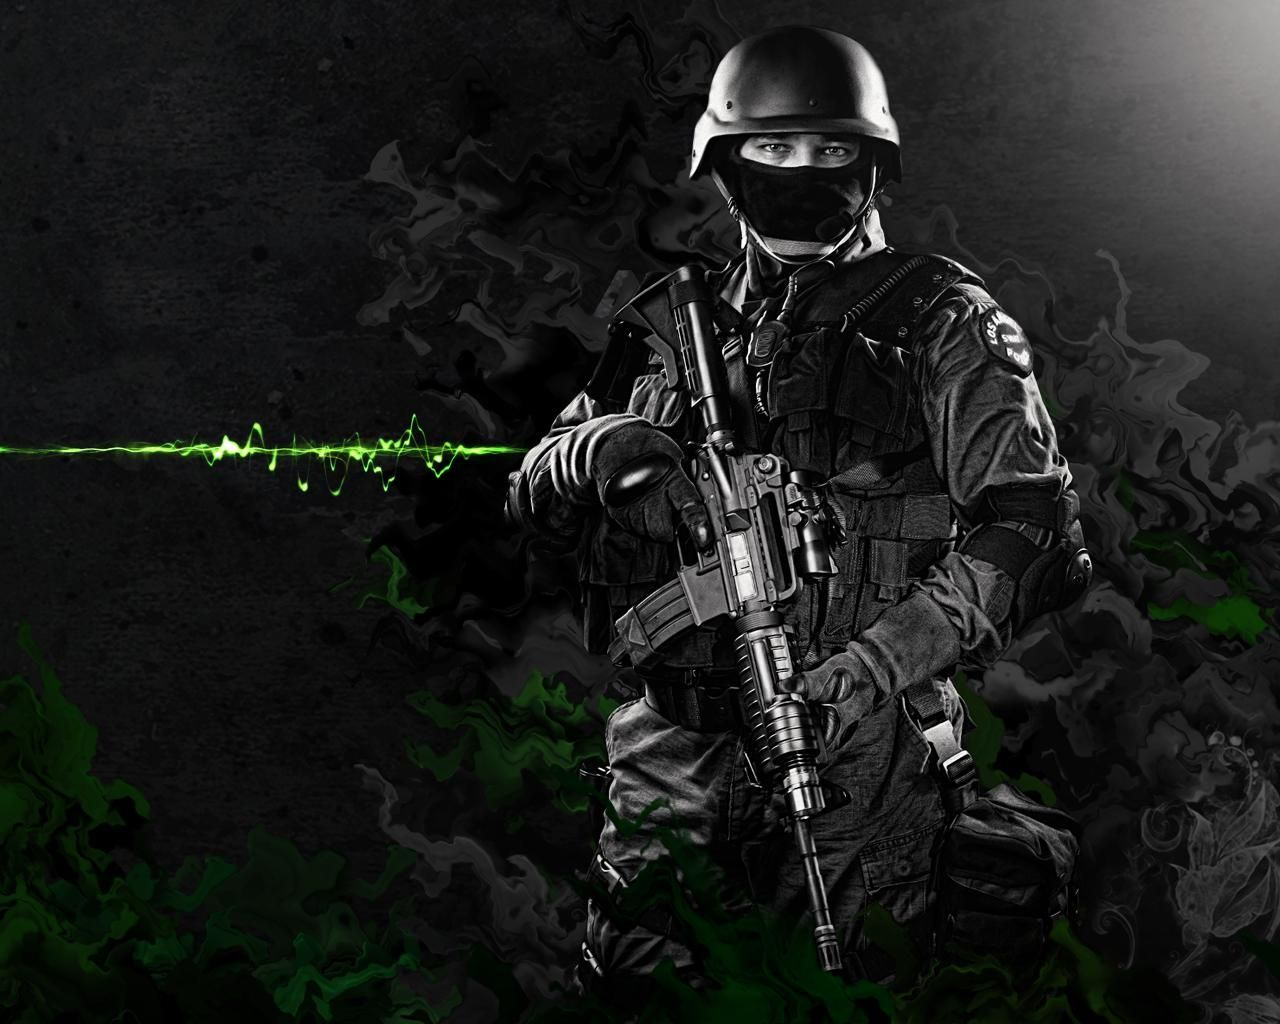 36 Call Of Duty Backgrounds Download Free Beautiful Hd: Cool Call Of Duty Wallpapers